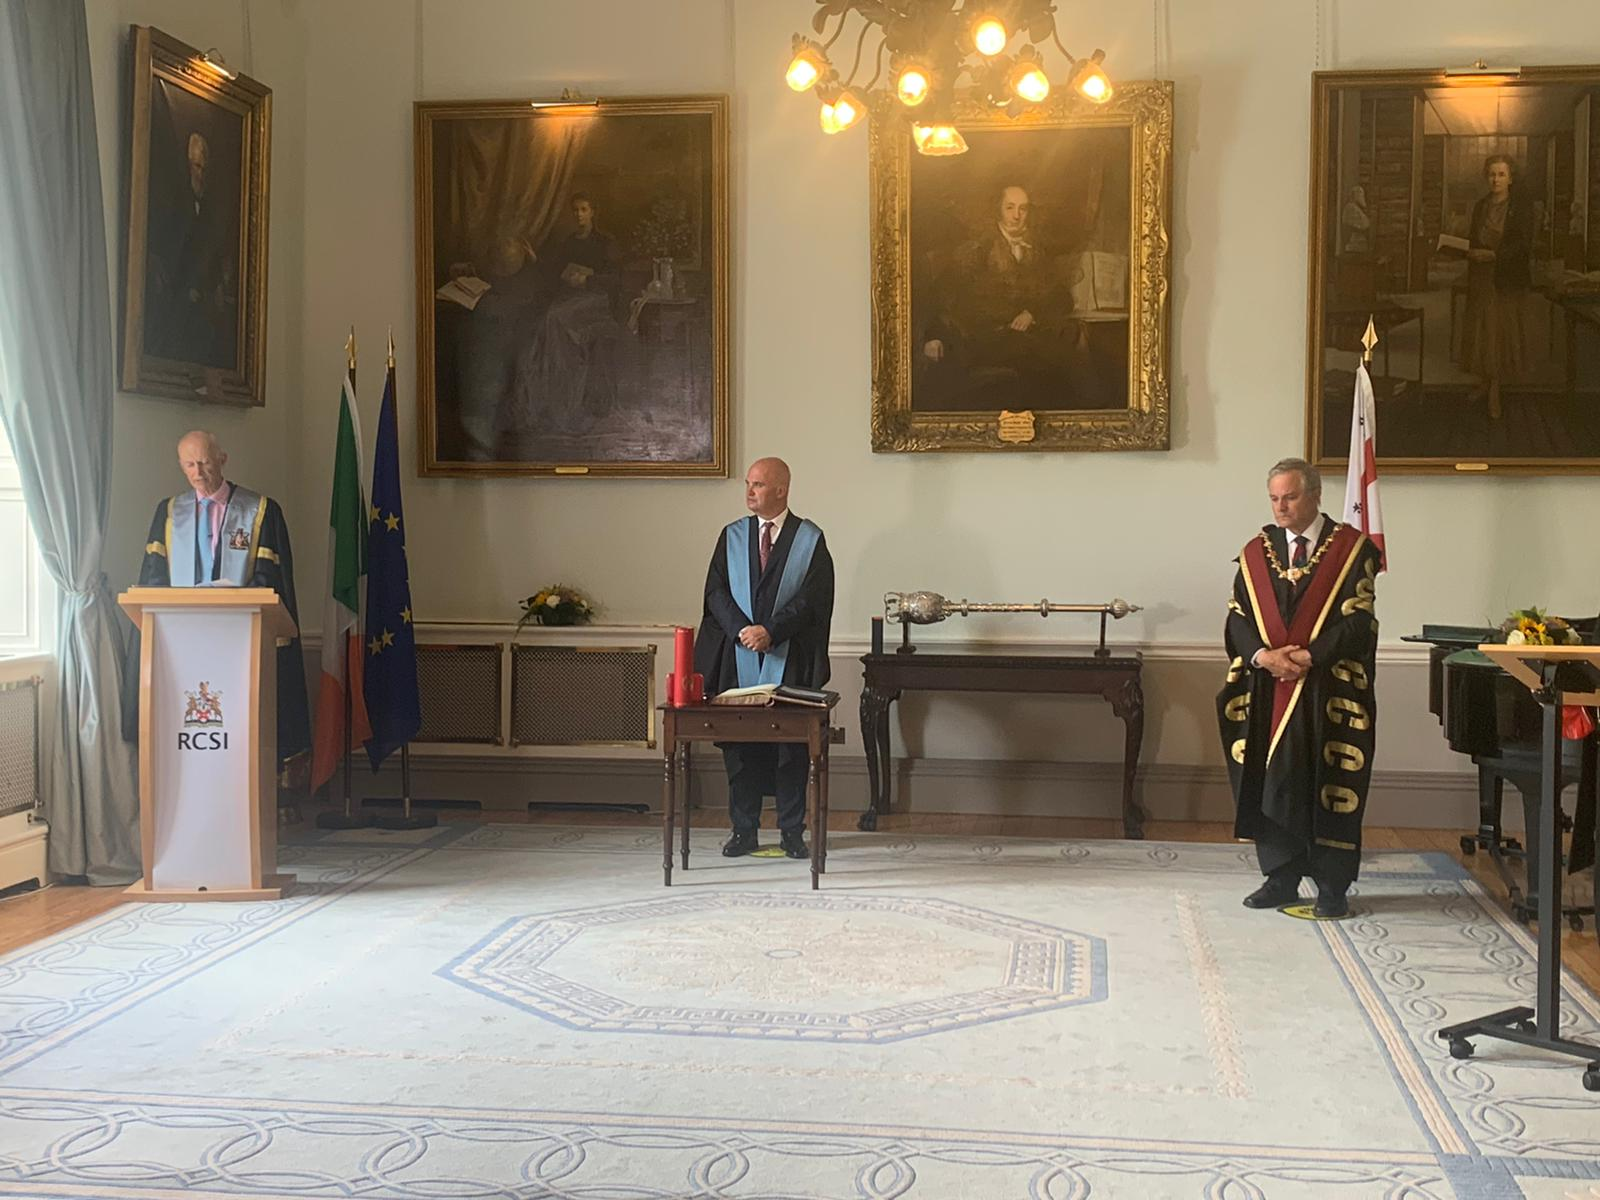 Dr Tony Holohan receiving an Honorary Fellowship from the Royal College of Surgeons in Ireland